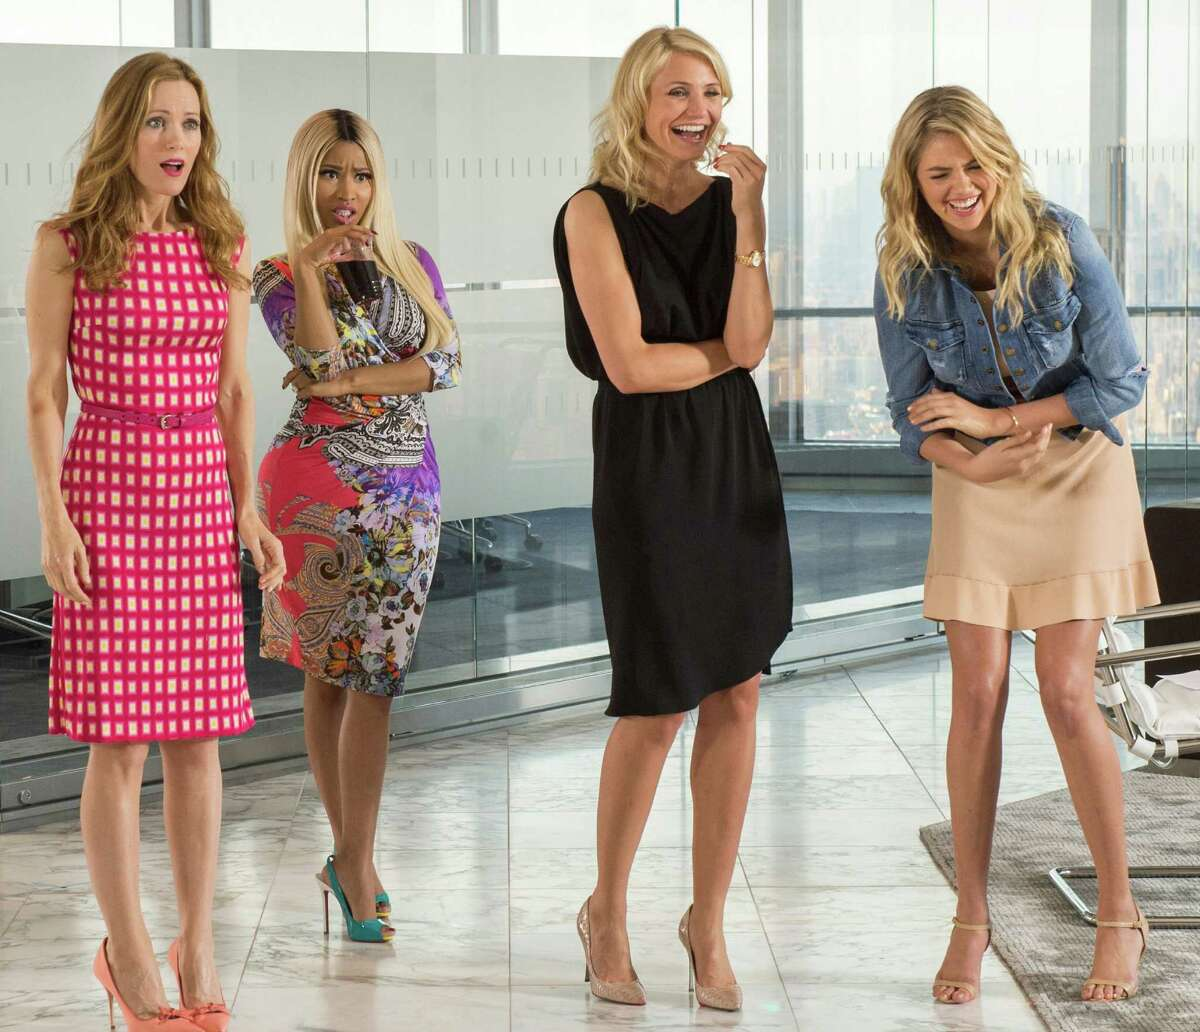 This image released by 20th Century Fox shows Leslie Mann, from left, Nicki Minaj, Cameron Diaz and Kate Upton in a scene from